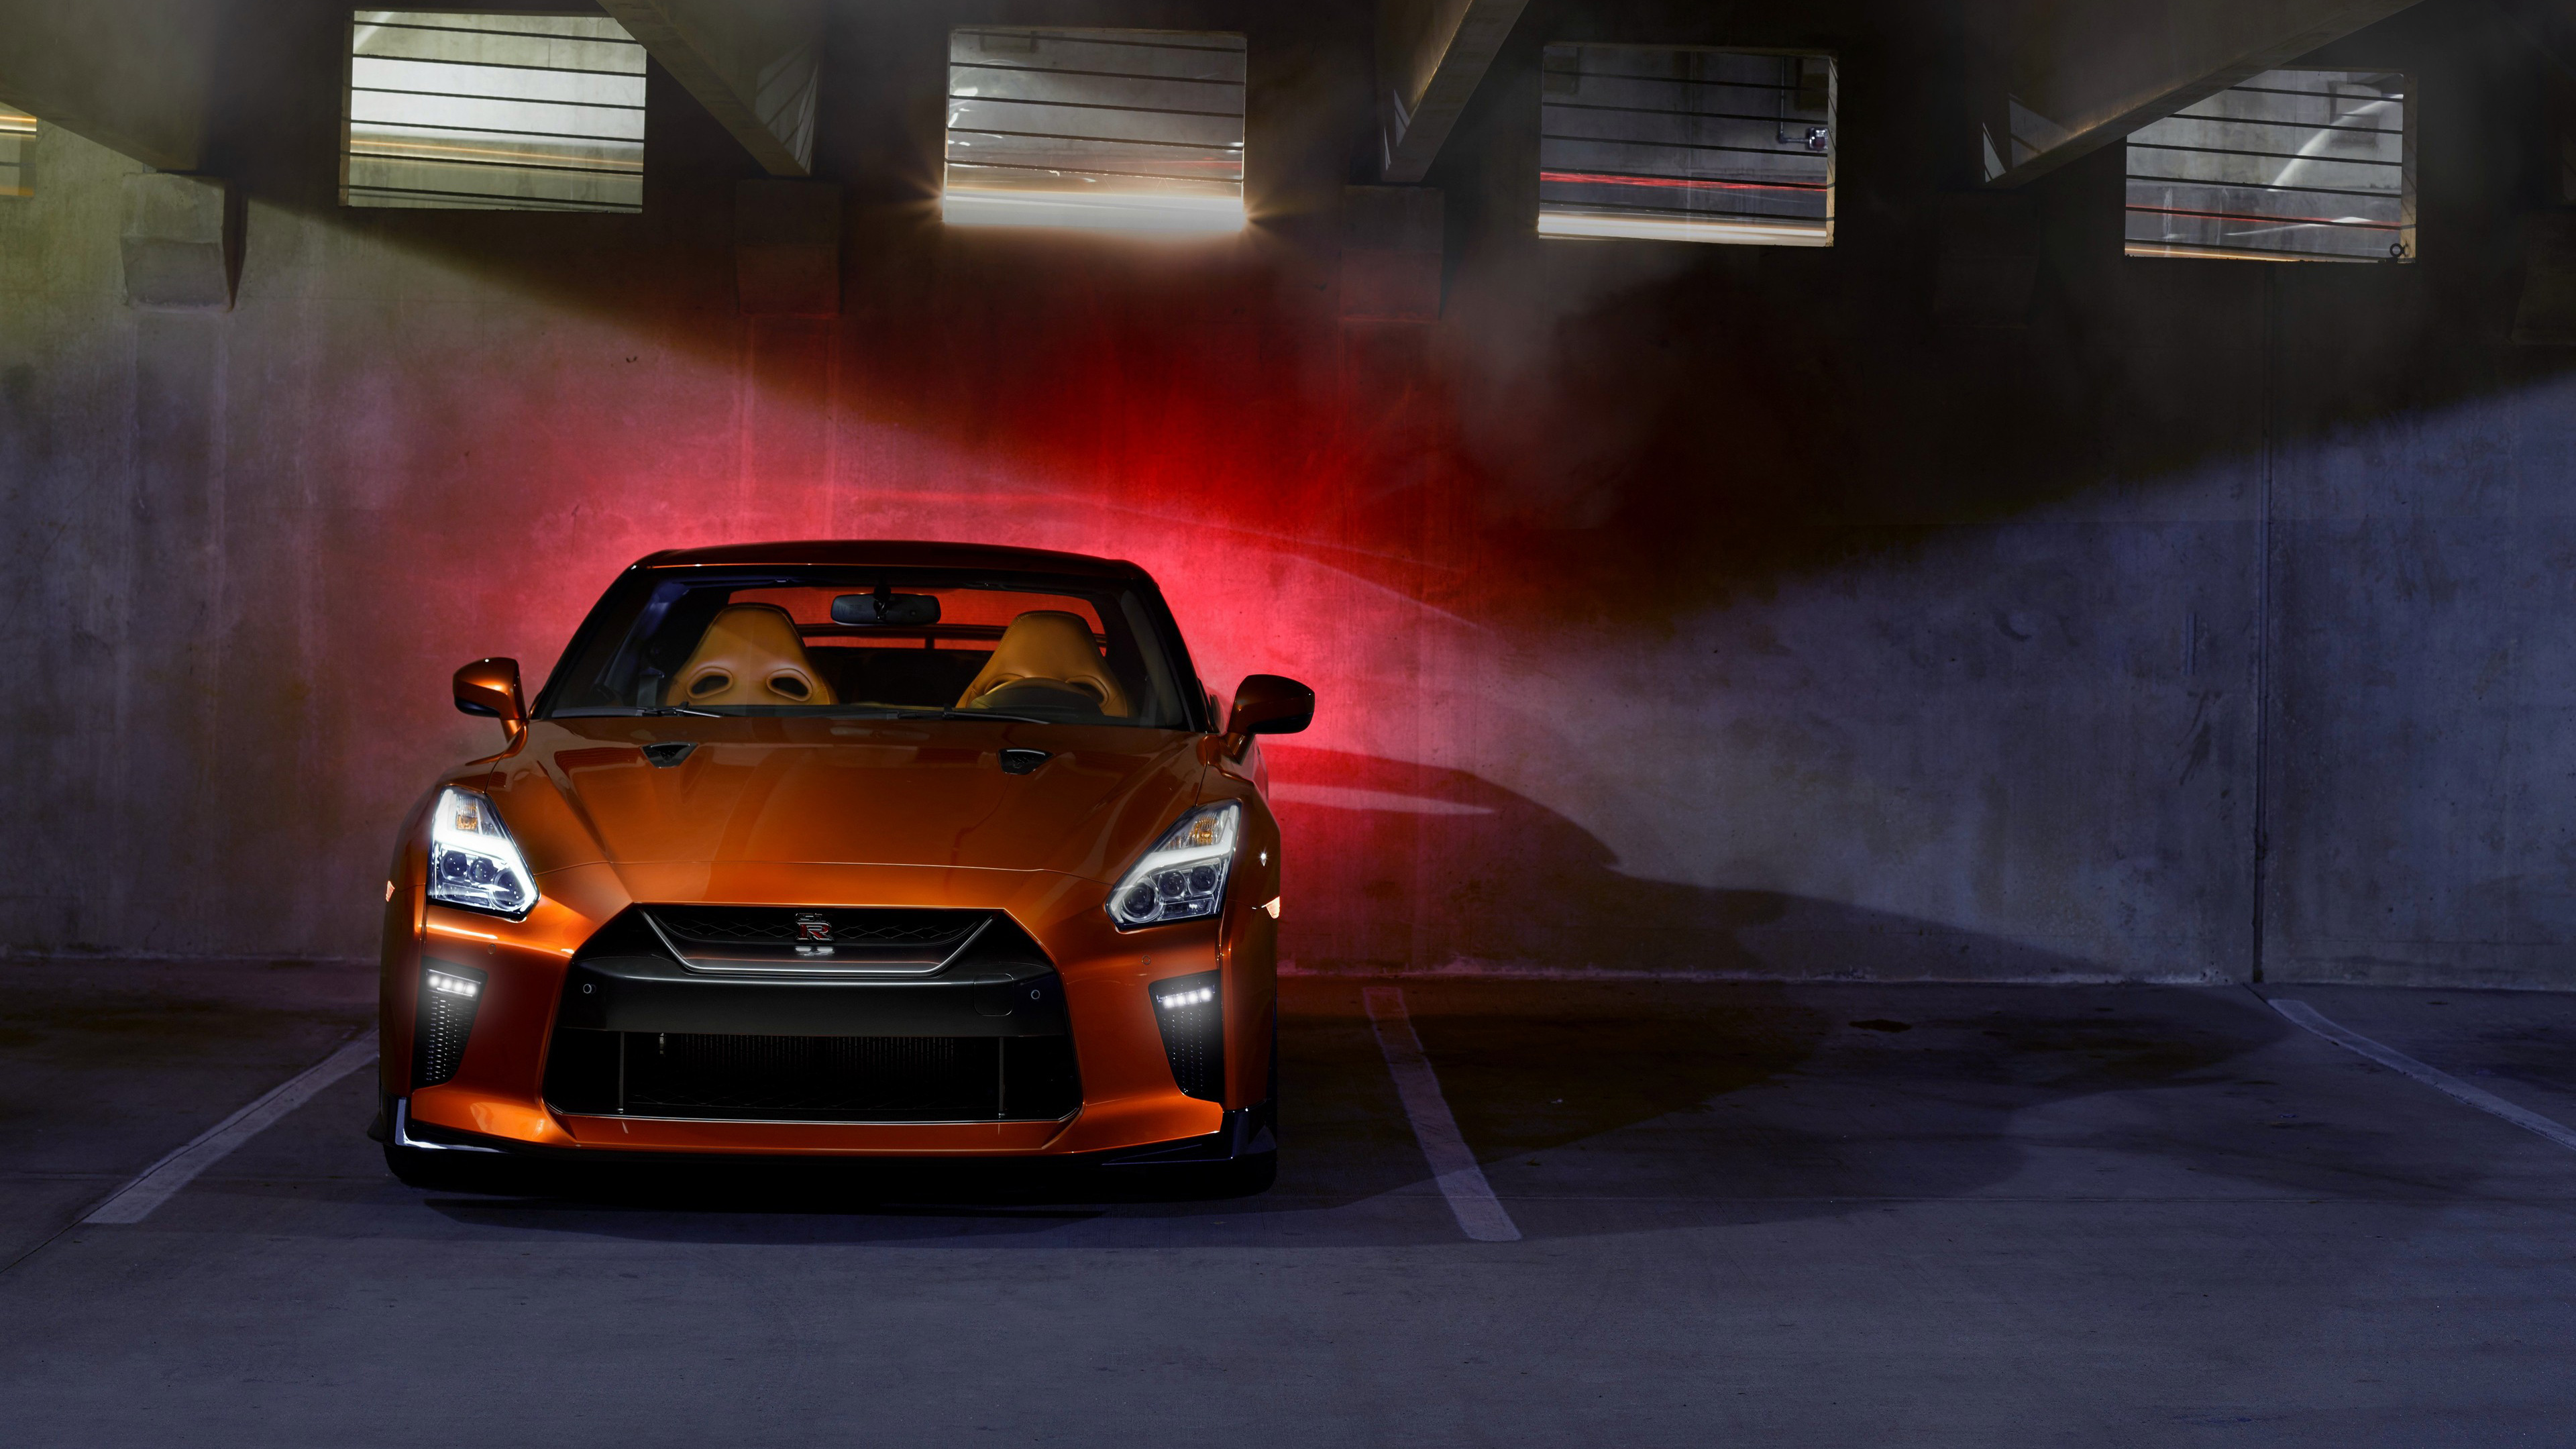 Nissan GT R Wallpapers Images Photos Pictures Backgrounds 3840x2160